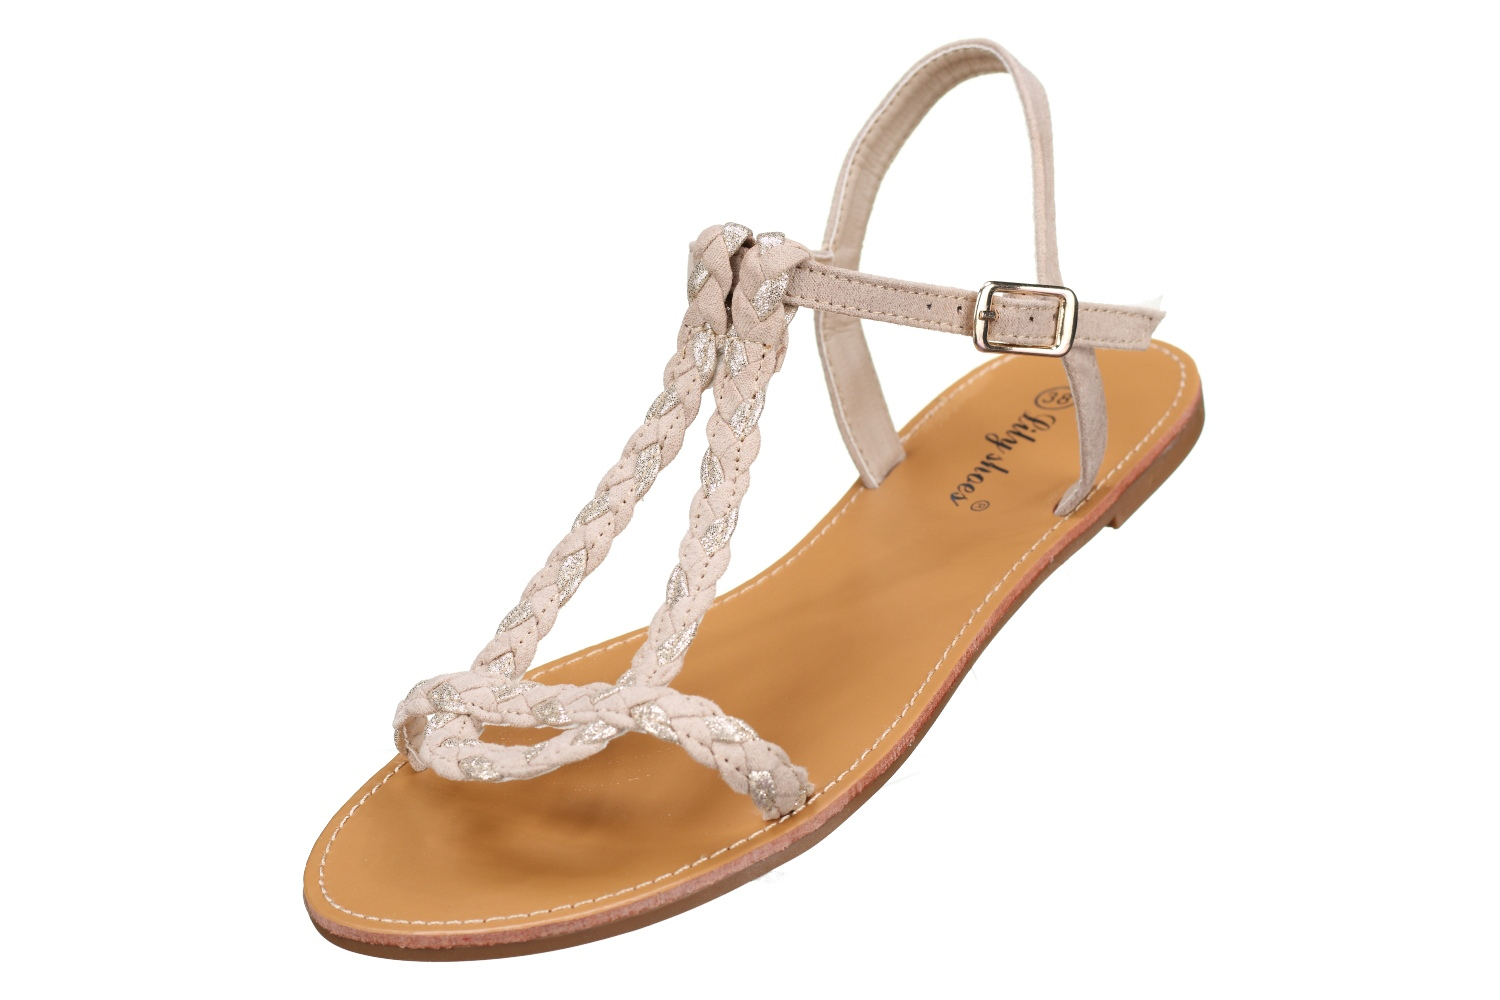 http://www.leadermode.com/143972/lily-shoes-l901-beige.jpg